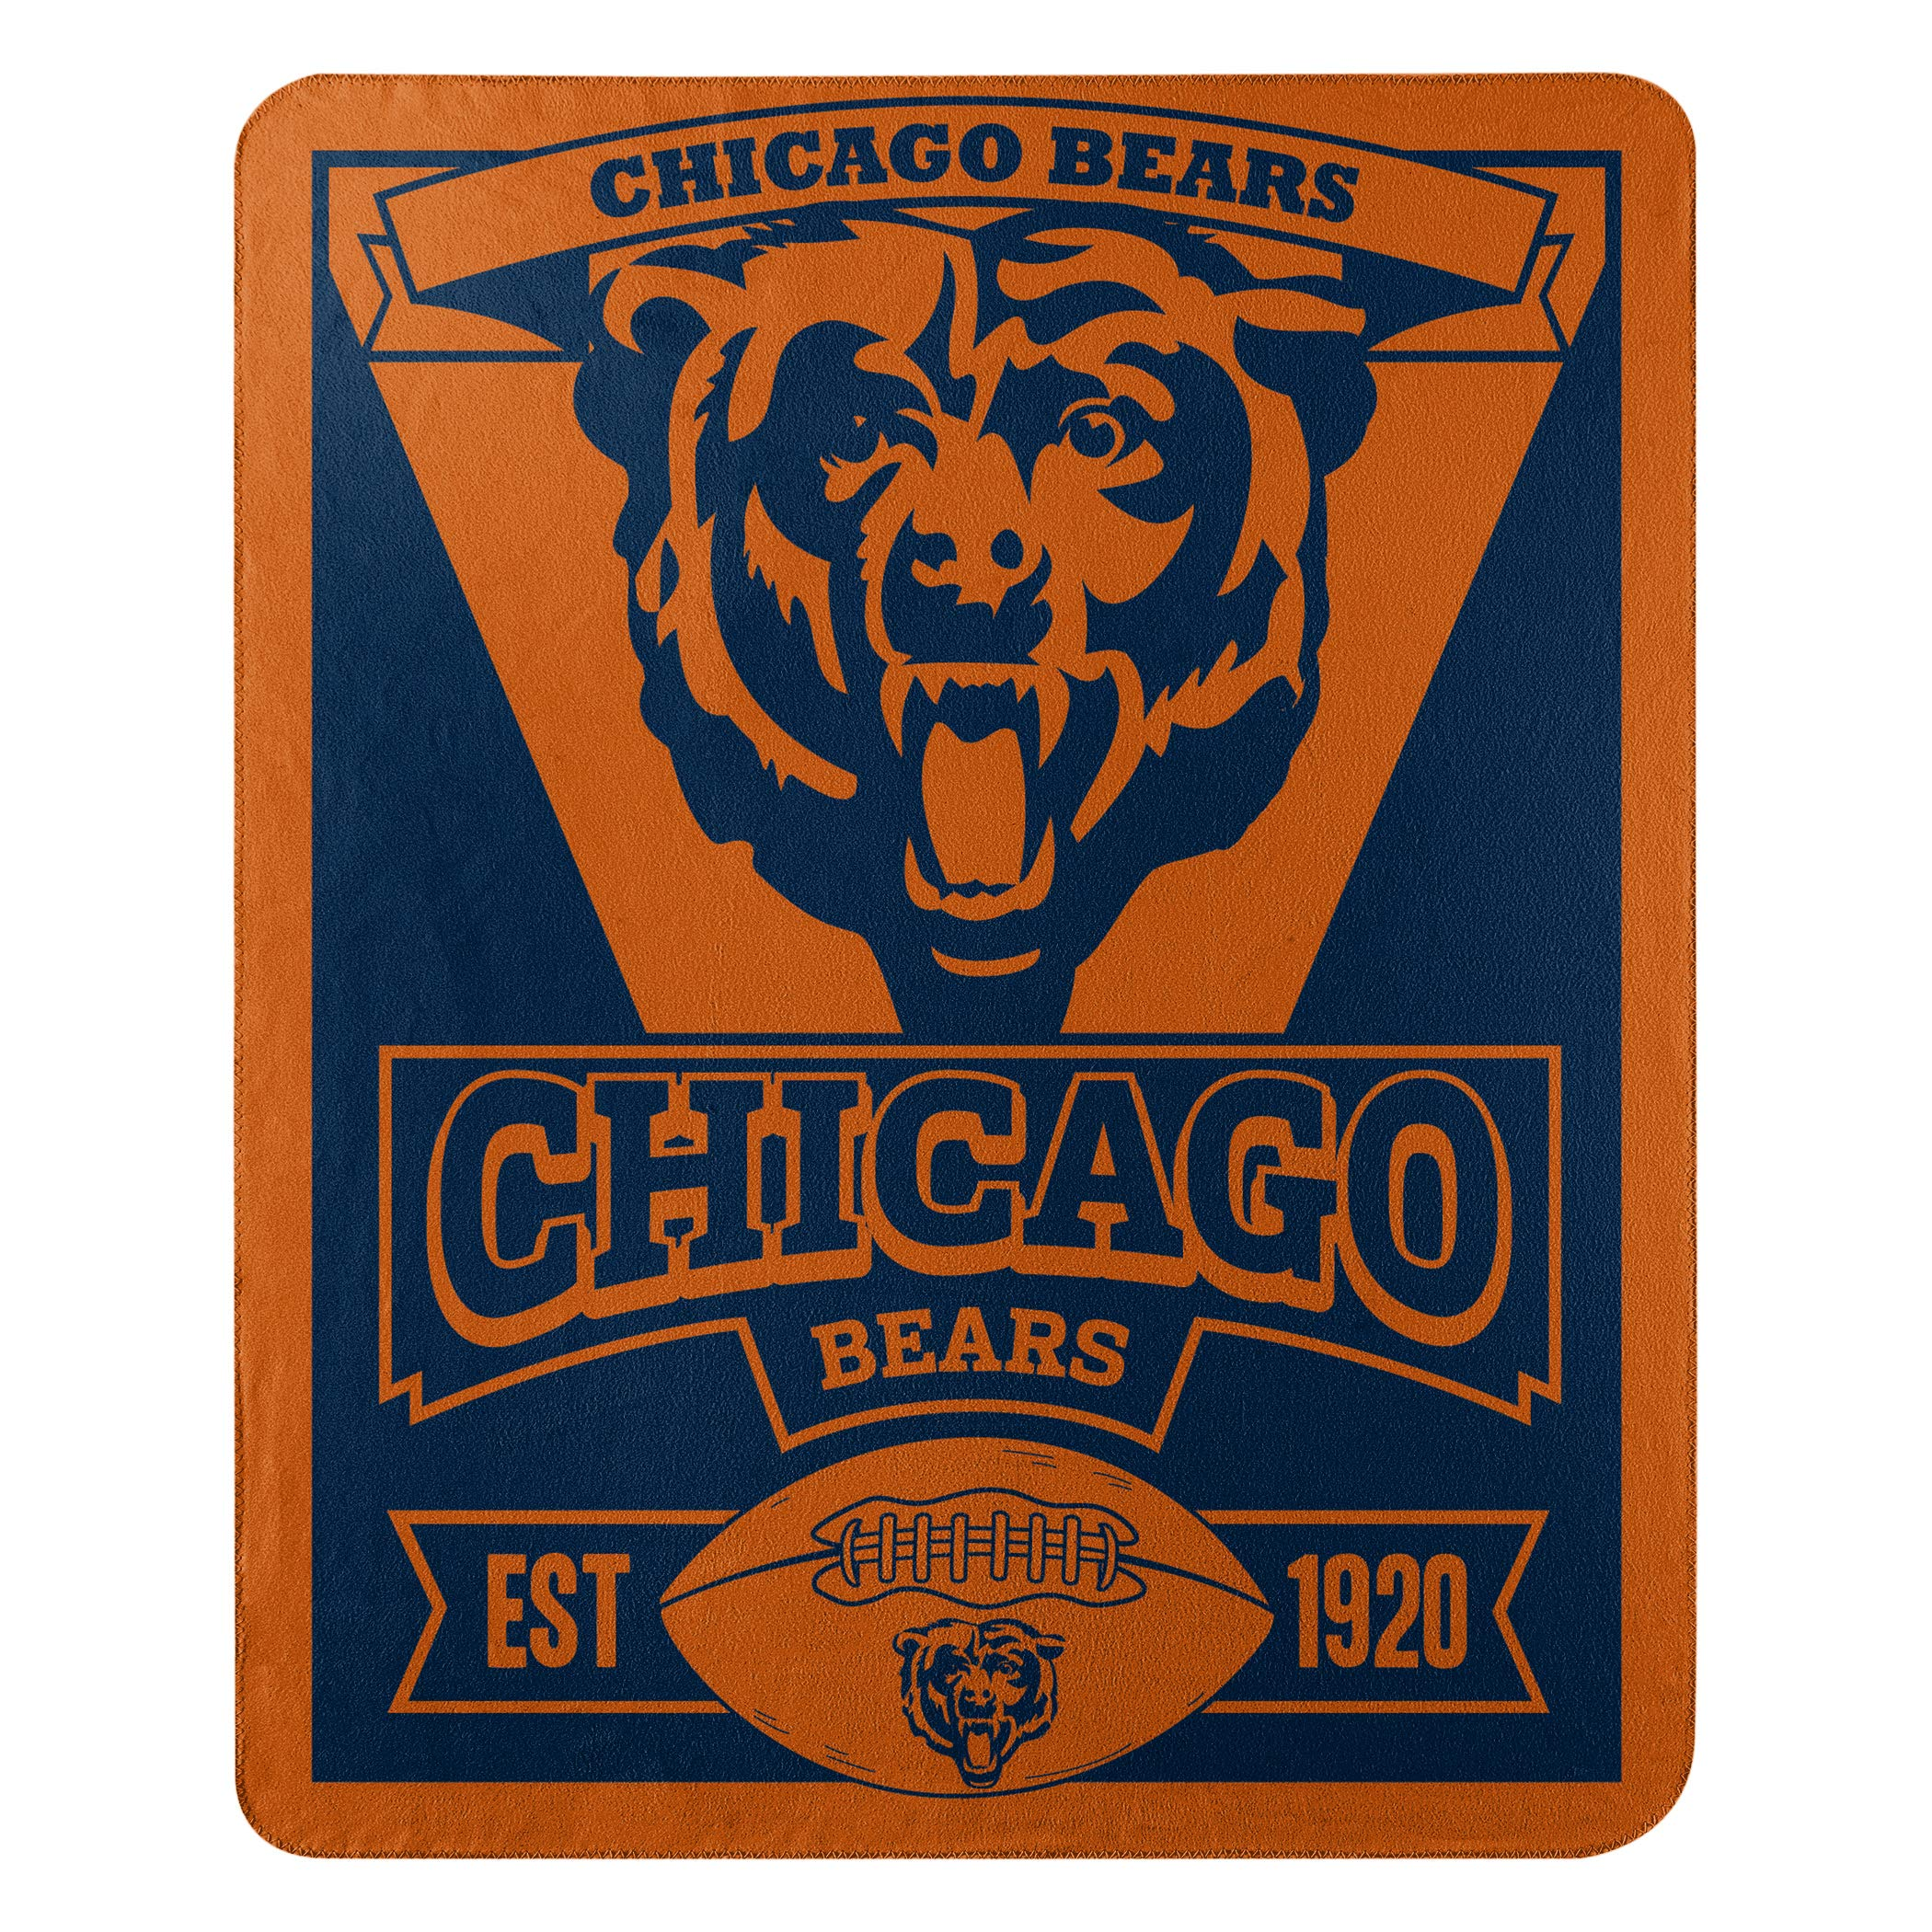 The Northwest Company Officially Licensed NFL Chicago Bears Marque Printed Fleece Throw Blanket, 50'' x 60'', Multi Color by The Northwest Company